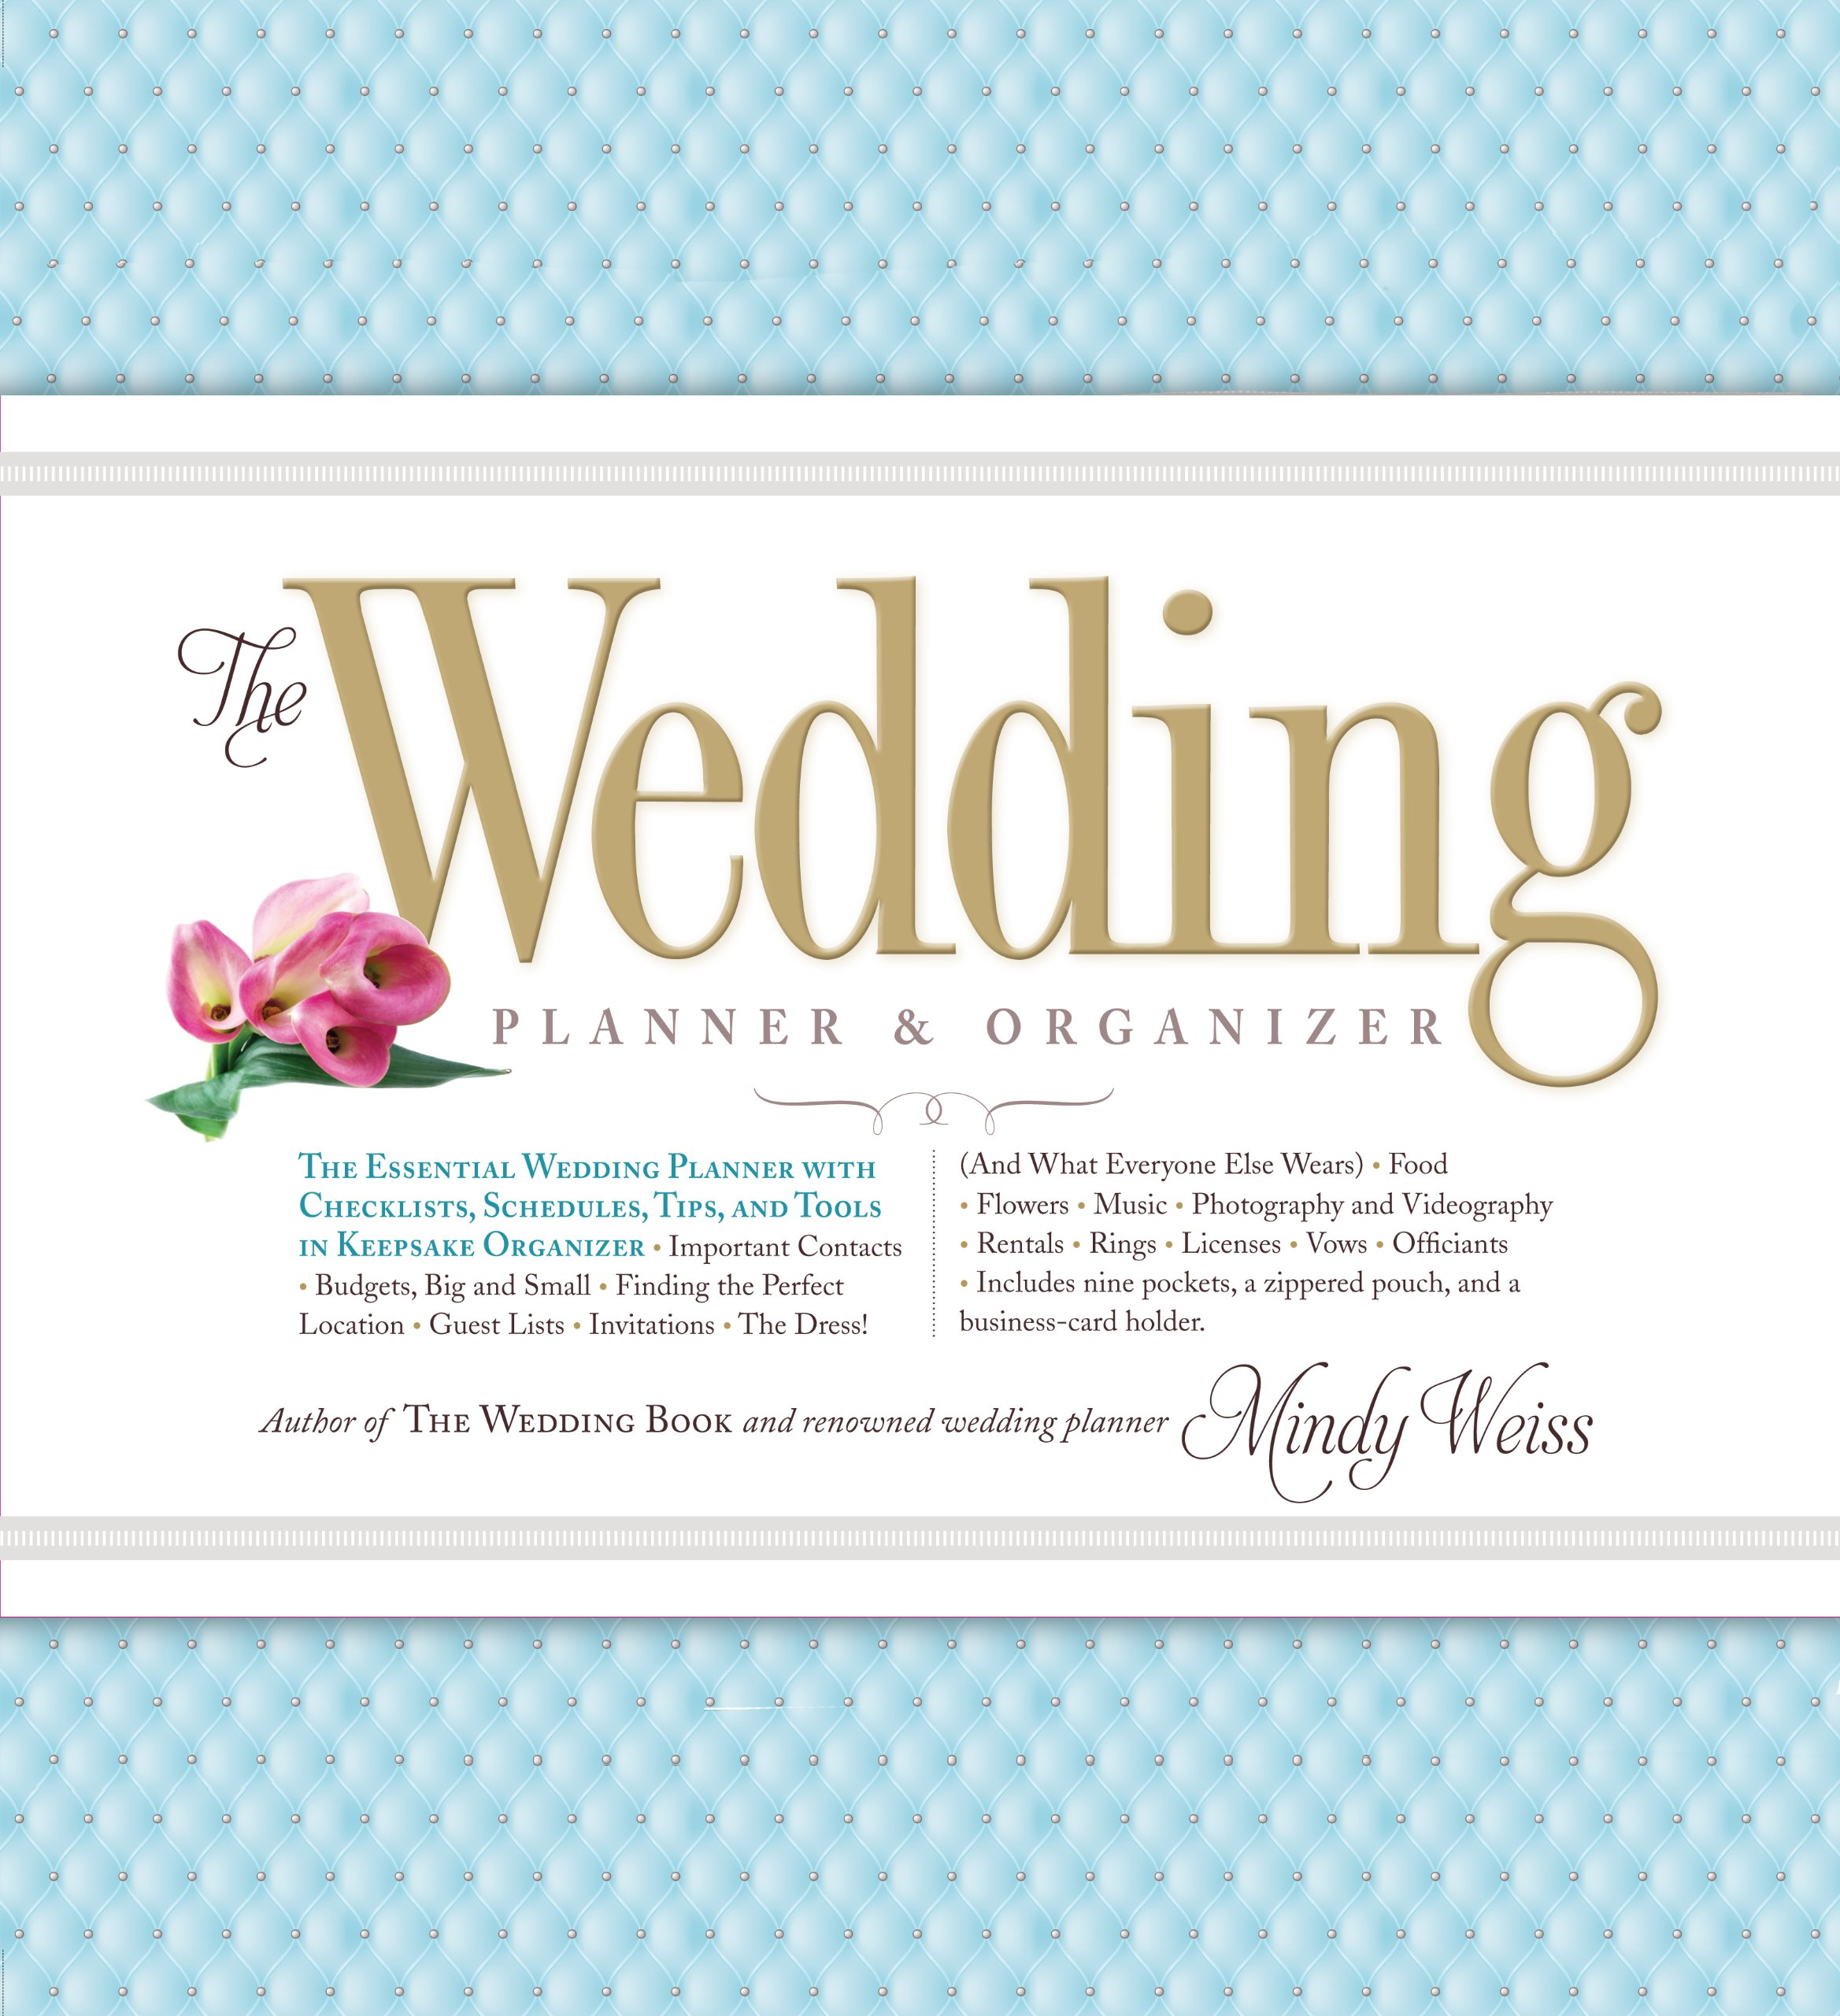 The wedding planner organizer mindy weiss 9780761165972 amazon the wedding planner organizer mindy weiss 9780761165972 amazon books junglespirit